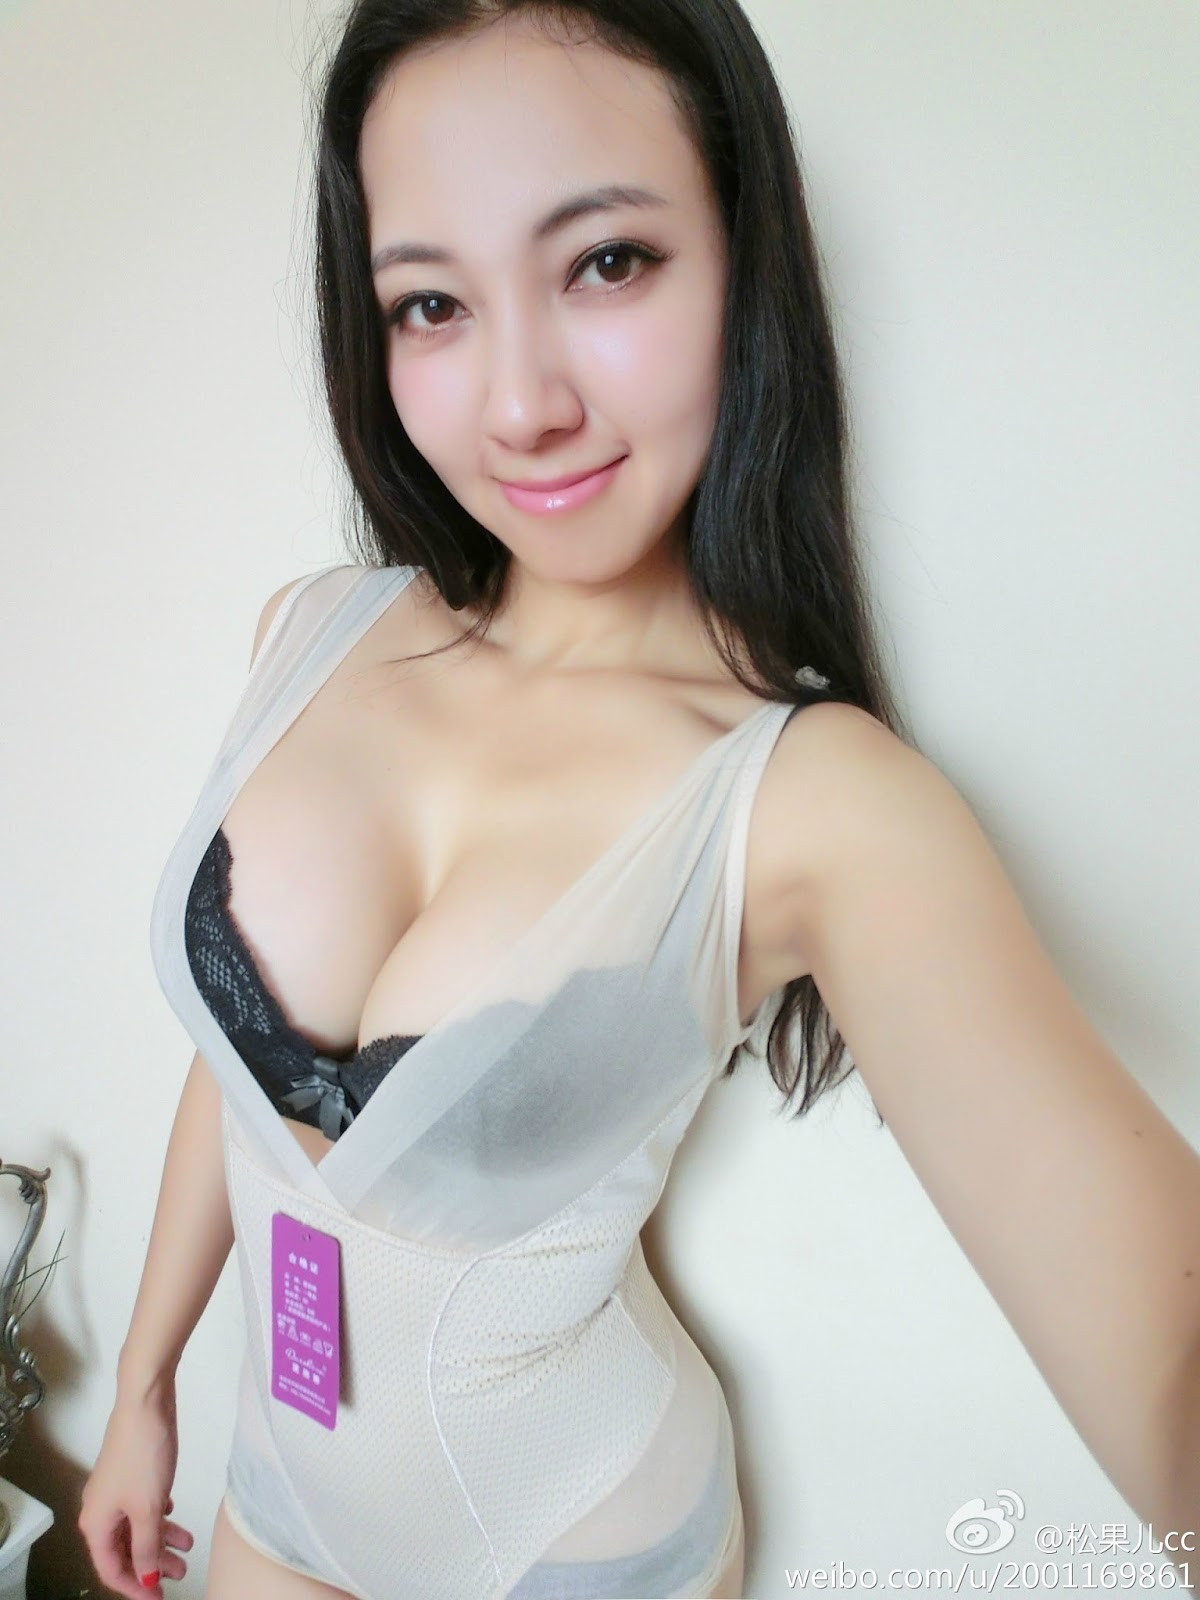 Song Guo Er 宋國洱 Big Breast Leaked Hot Sexiest Panties for Product Endorsement